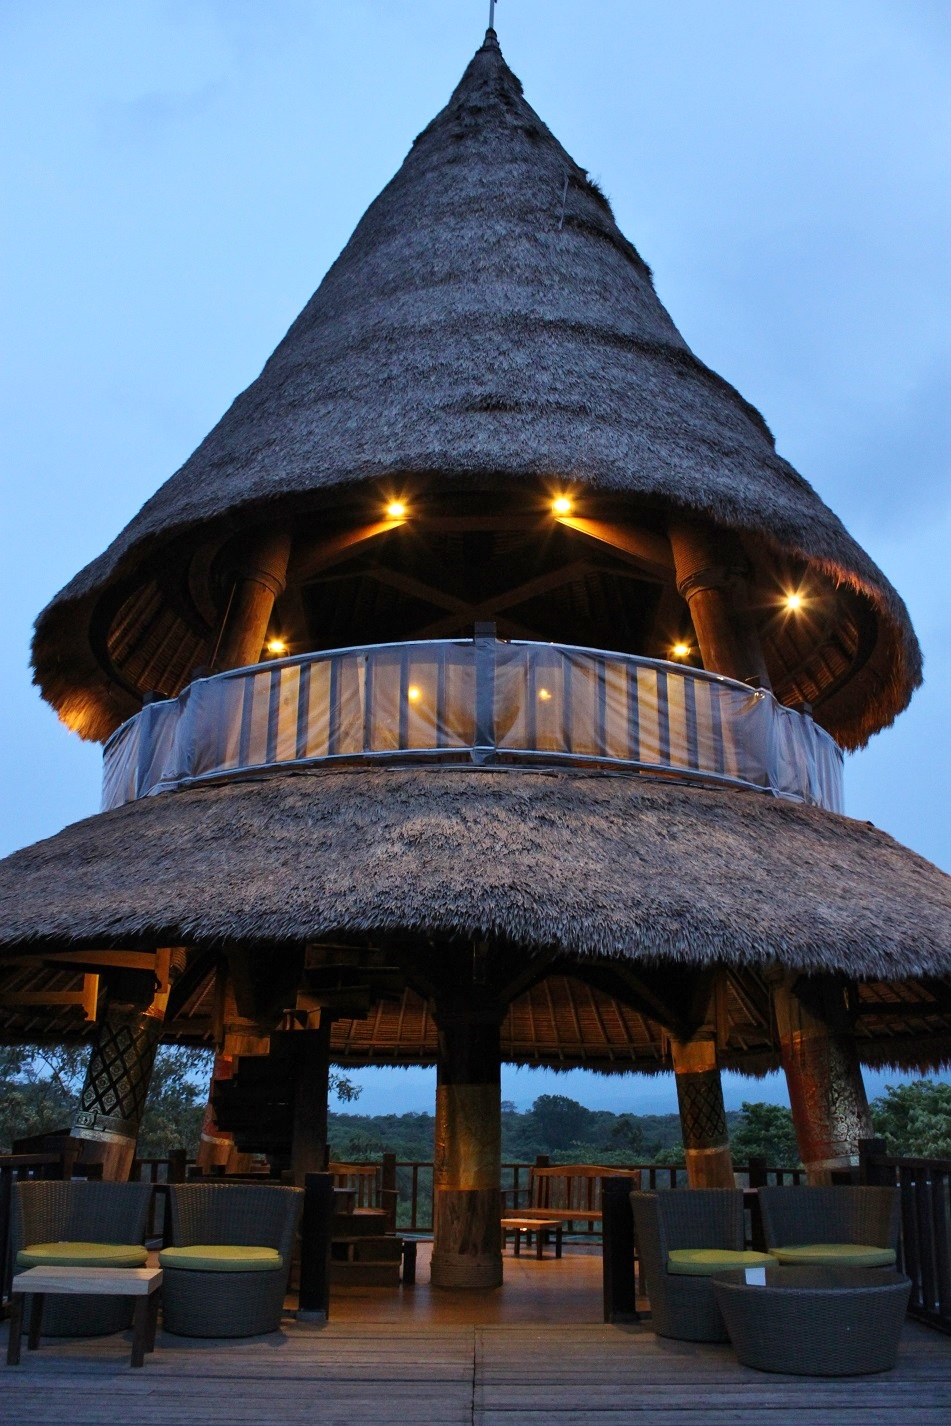 Bali Tower, the Resort's Landmark